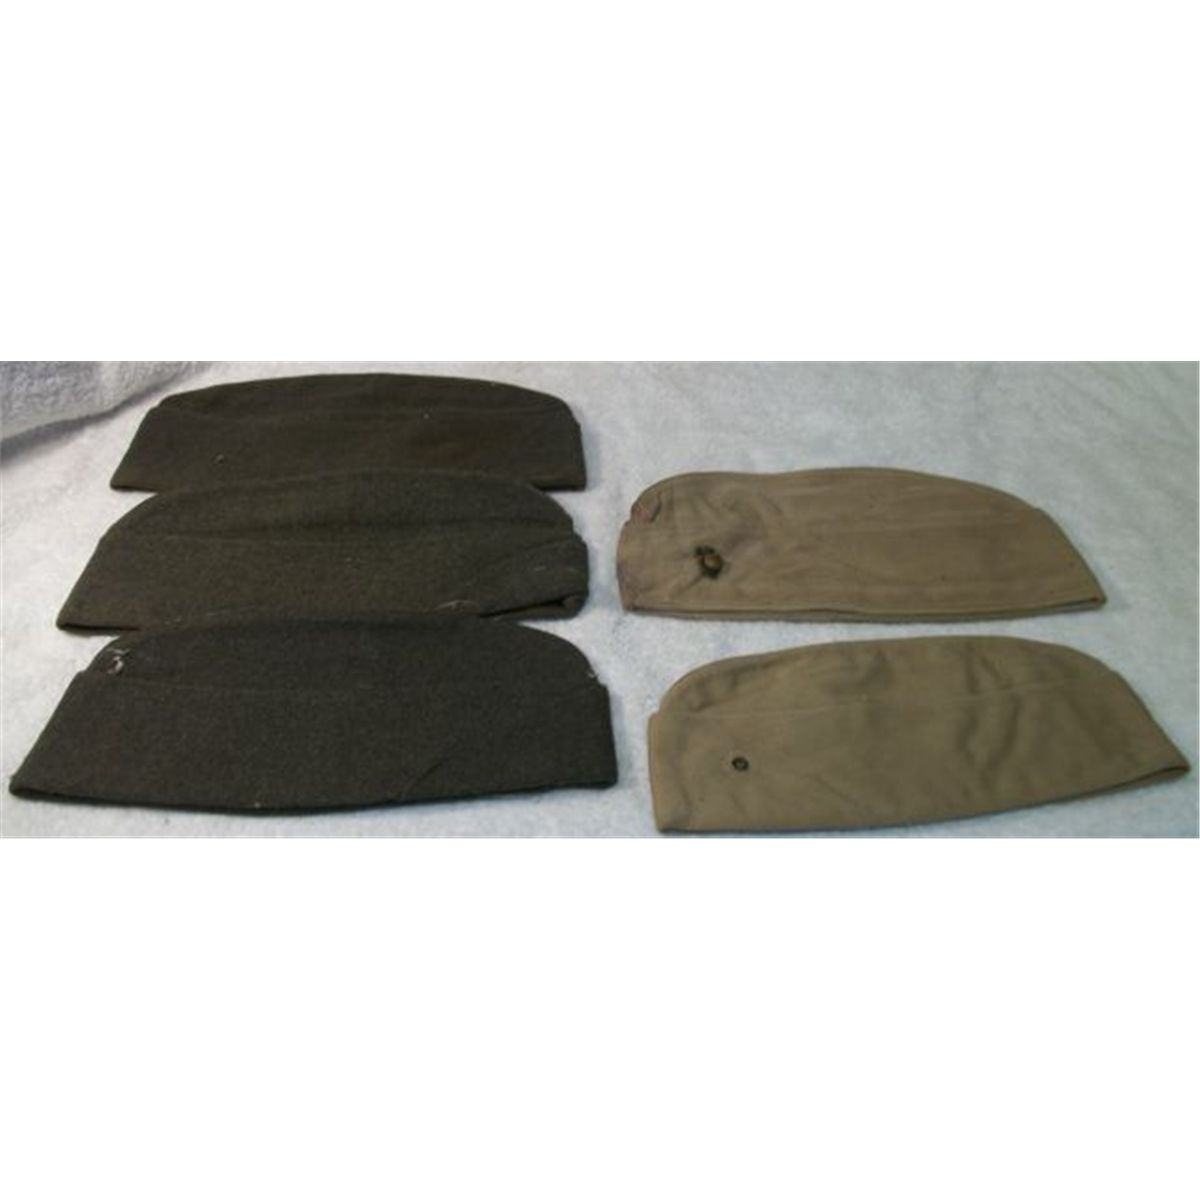 3 wool wwii 2 khaki wwii army garrison covers one with usmc pin